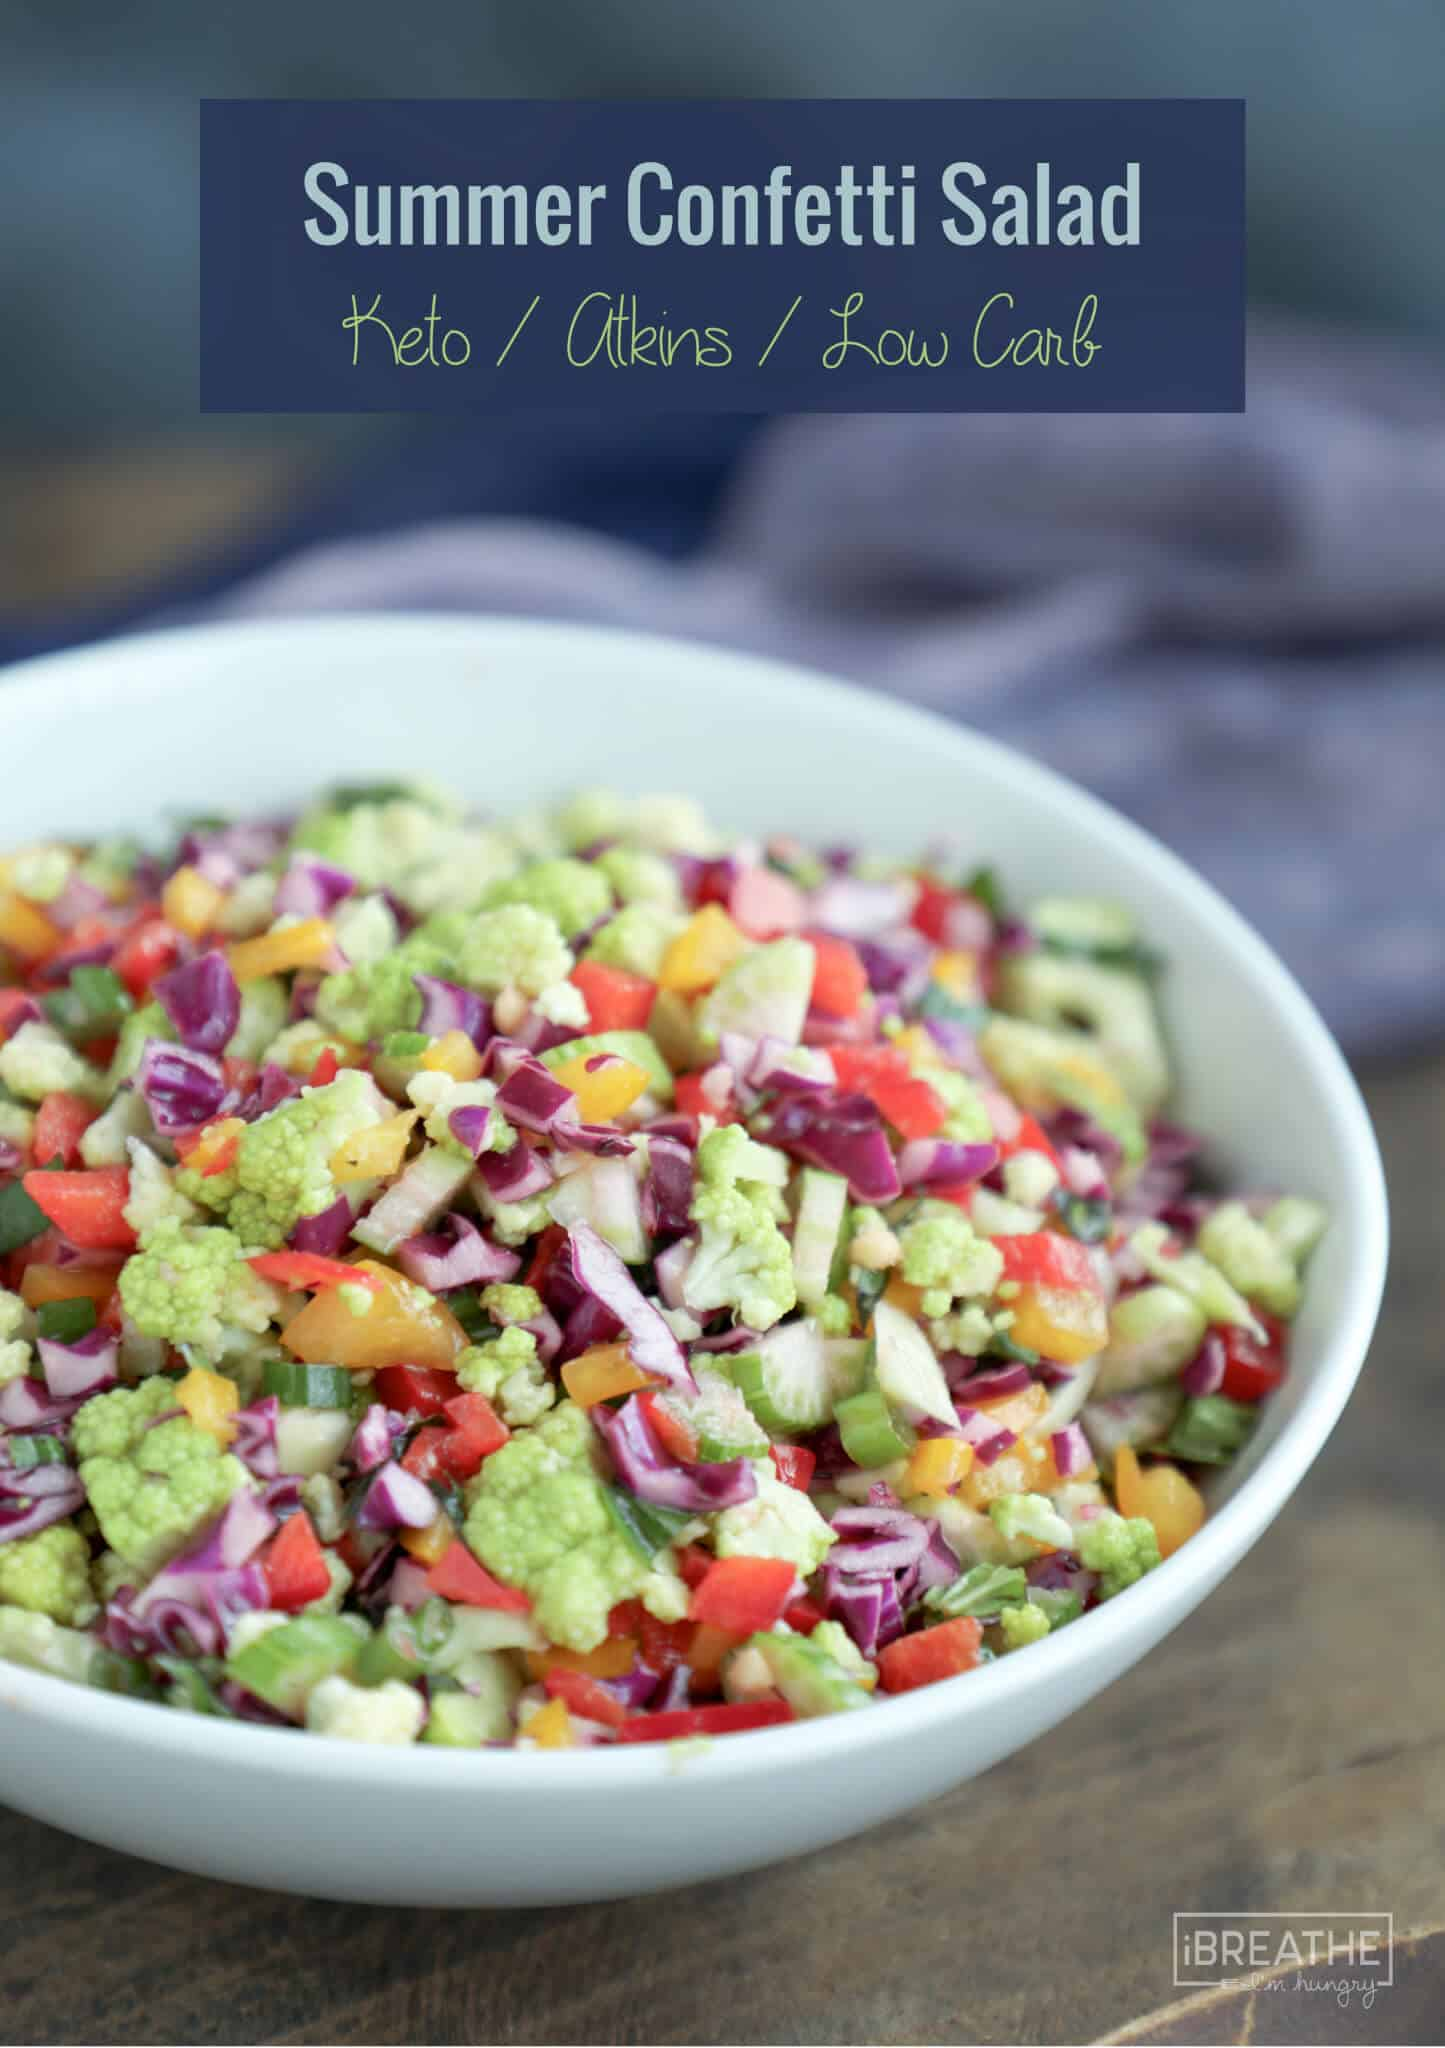 Low carb summer confetti salad